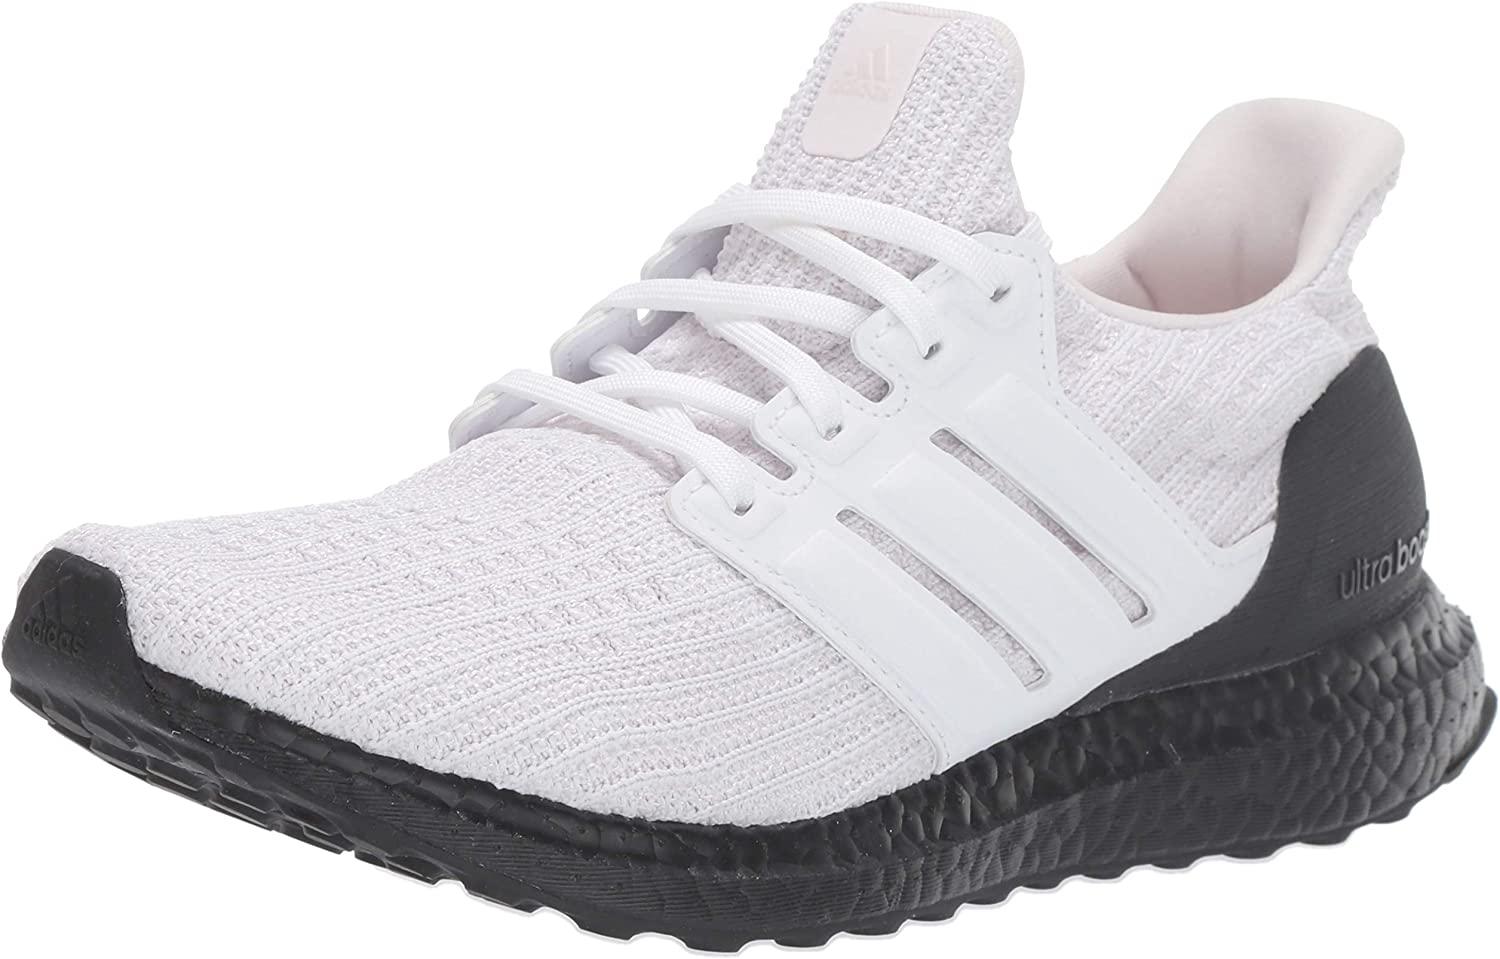 Adidas Men S Ultraboost Road Running